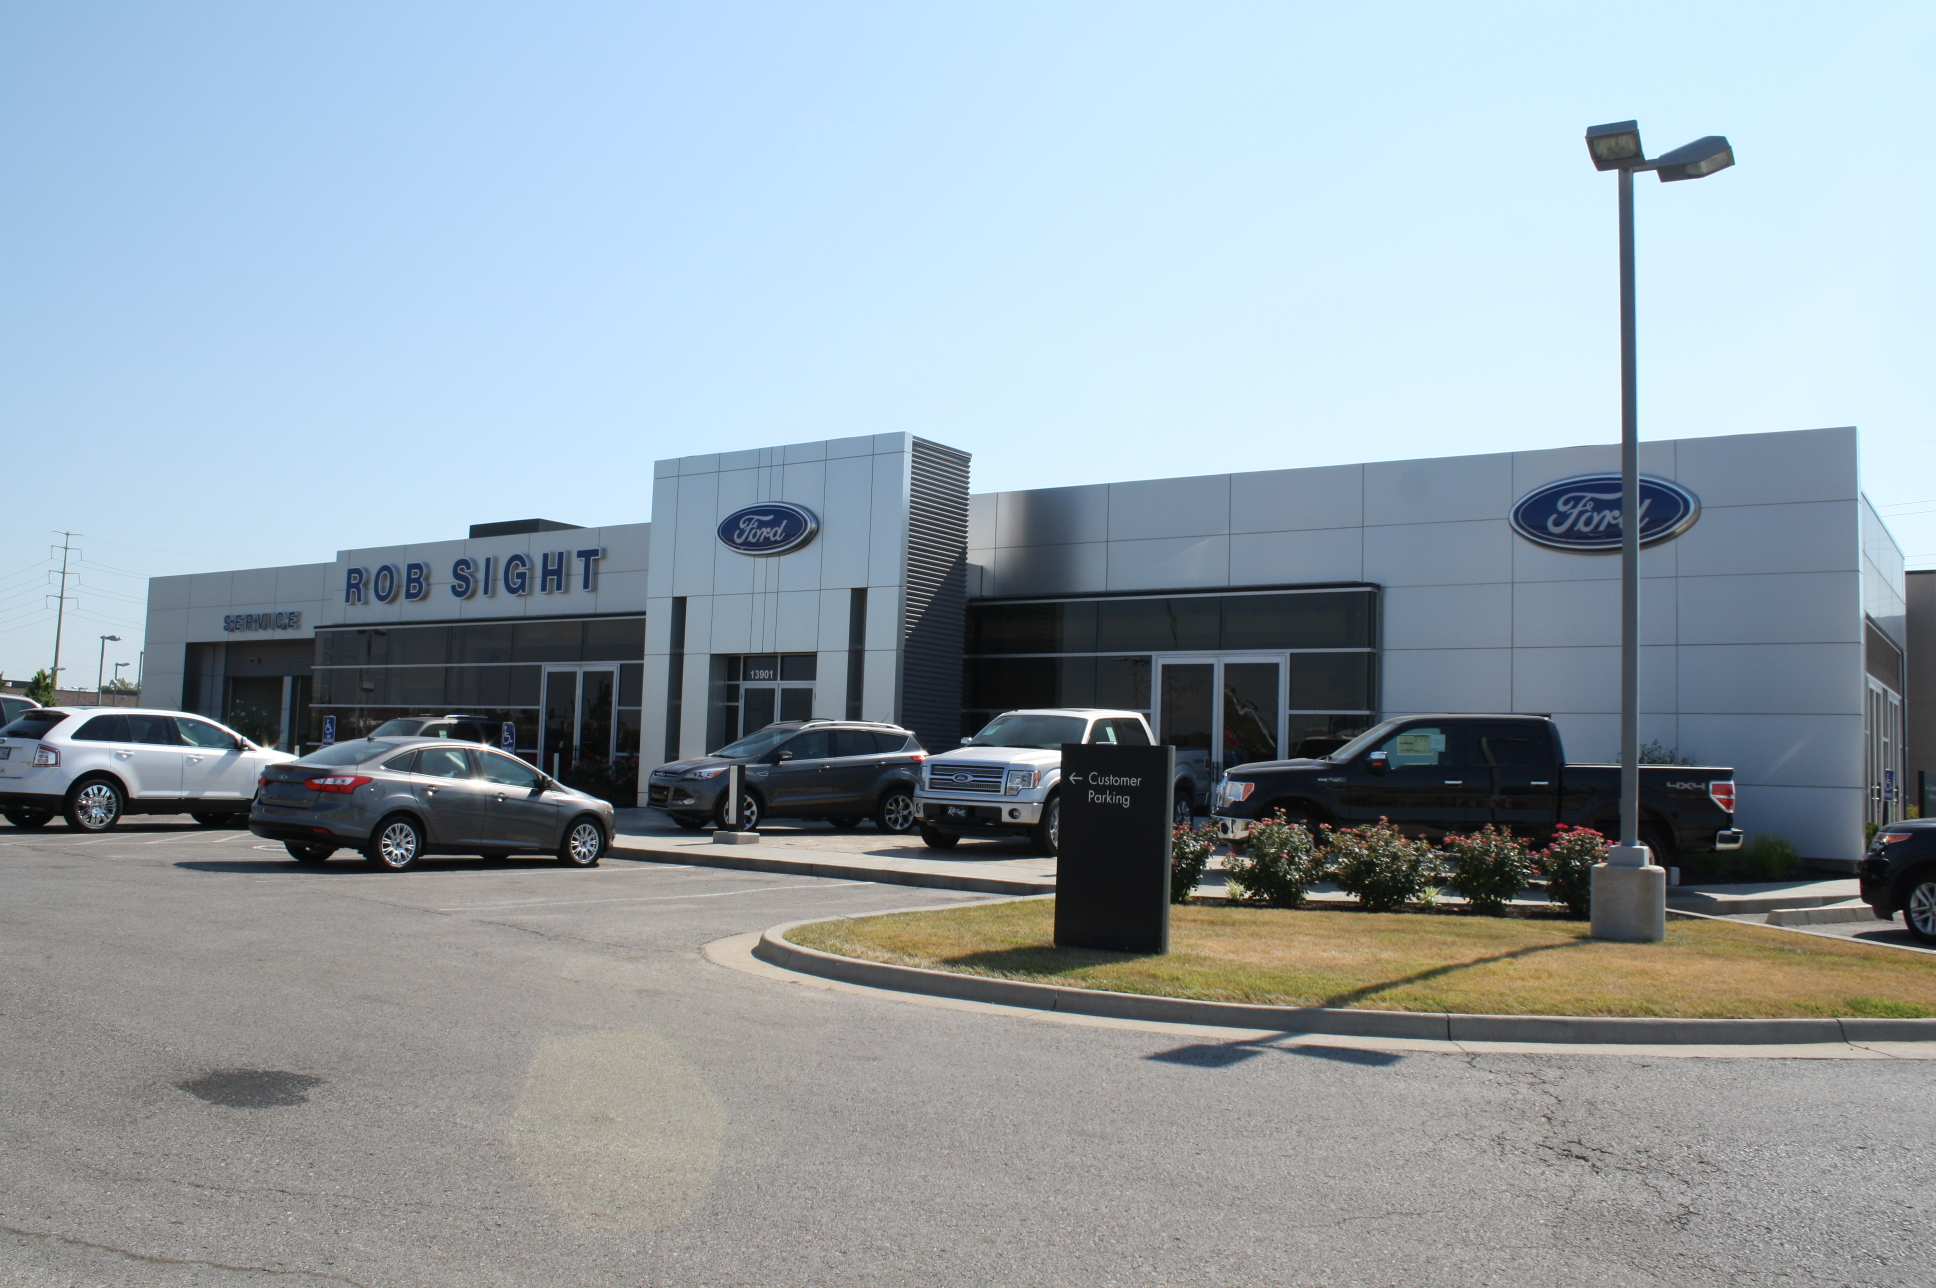 rob sight ford car dealerships auto dealers kansas city missouri. Cars Review. Best American Auto & Cars Review